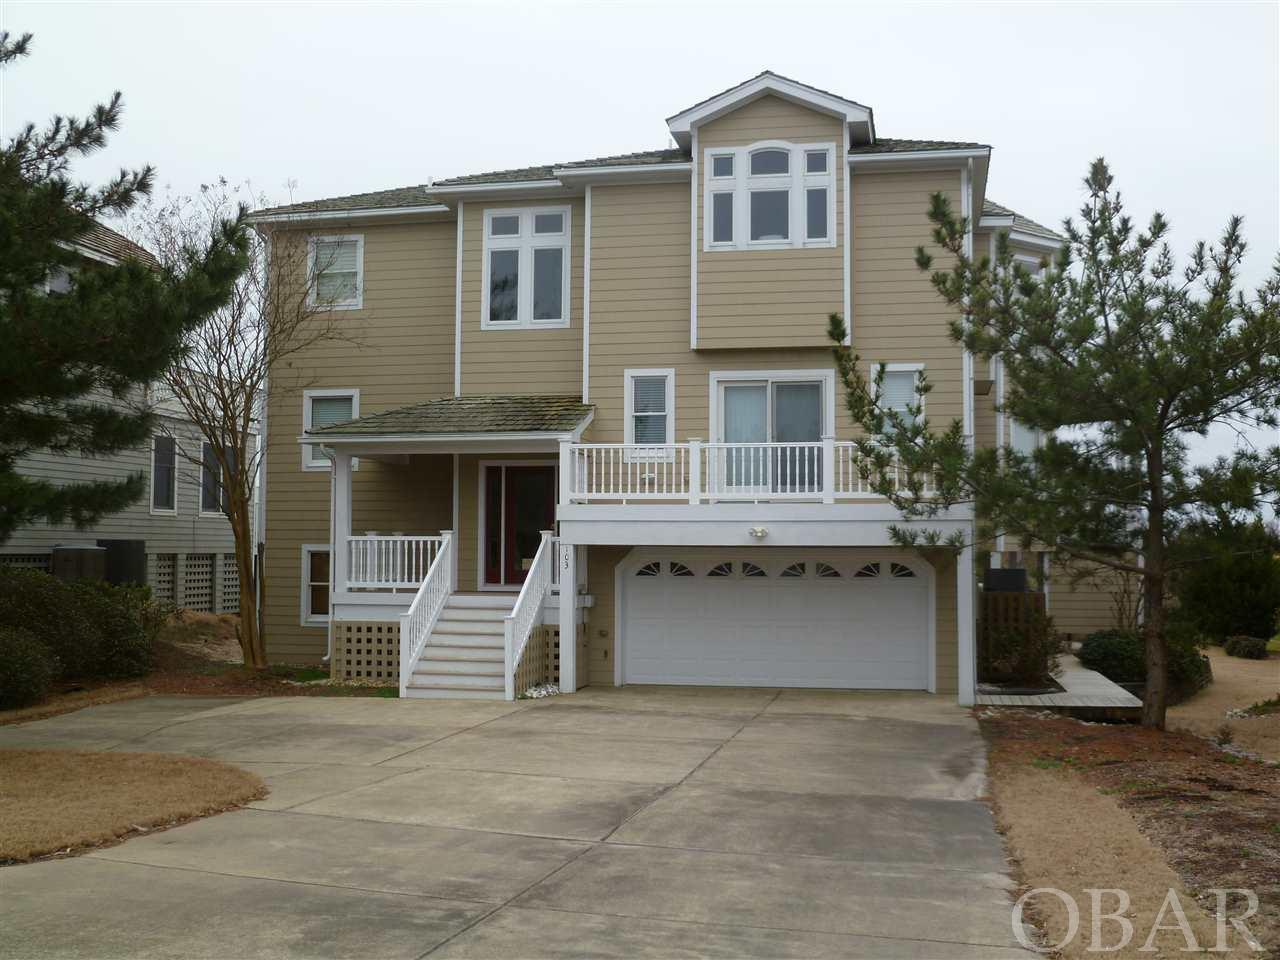 103 Craig End,Nags Head,NC 27959,4 Bedrooms Bedrooms,4 BathroomsBathrooms,Residential,Craig End,99261